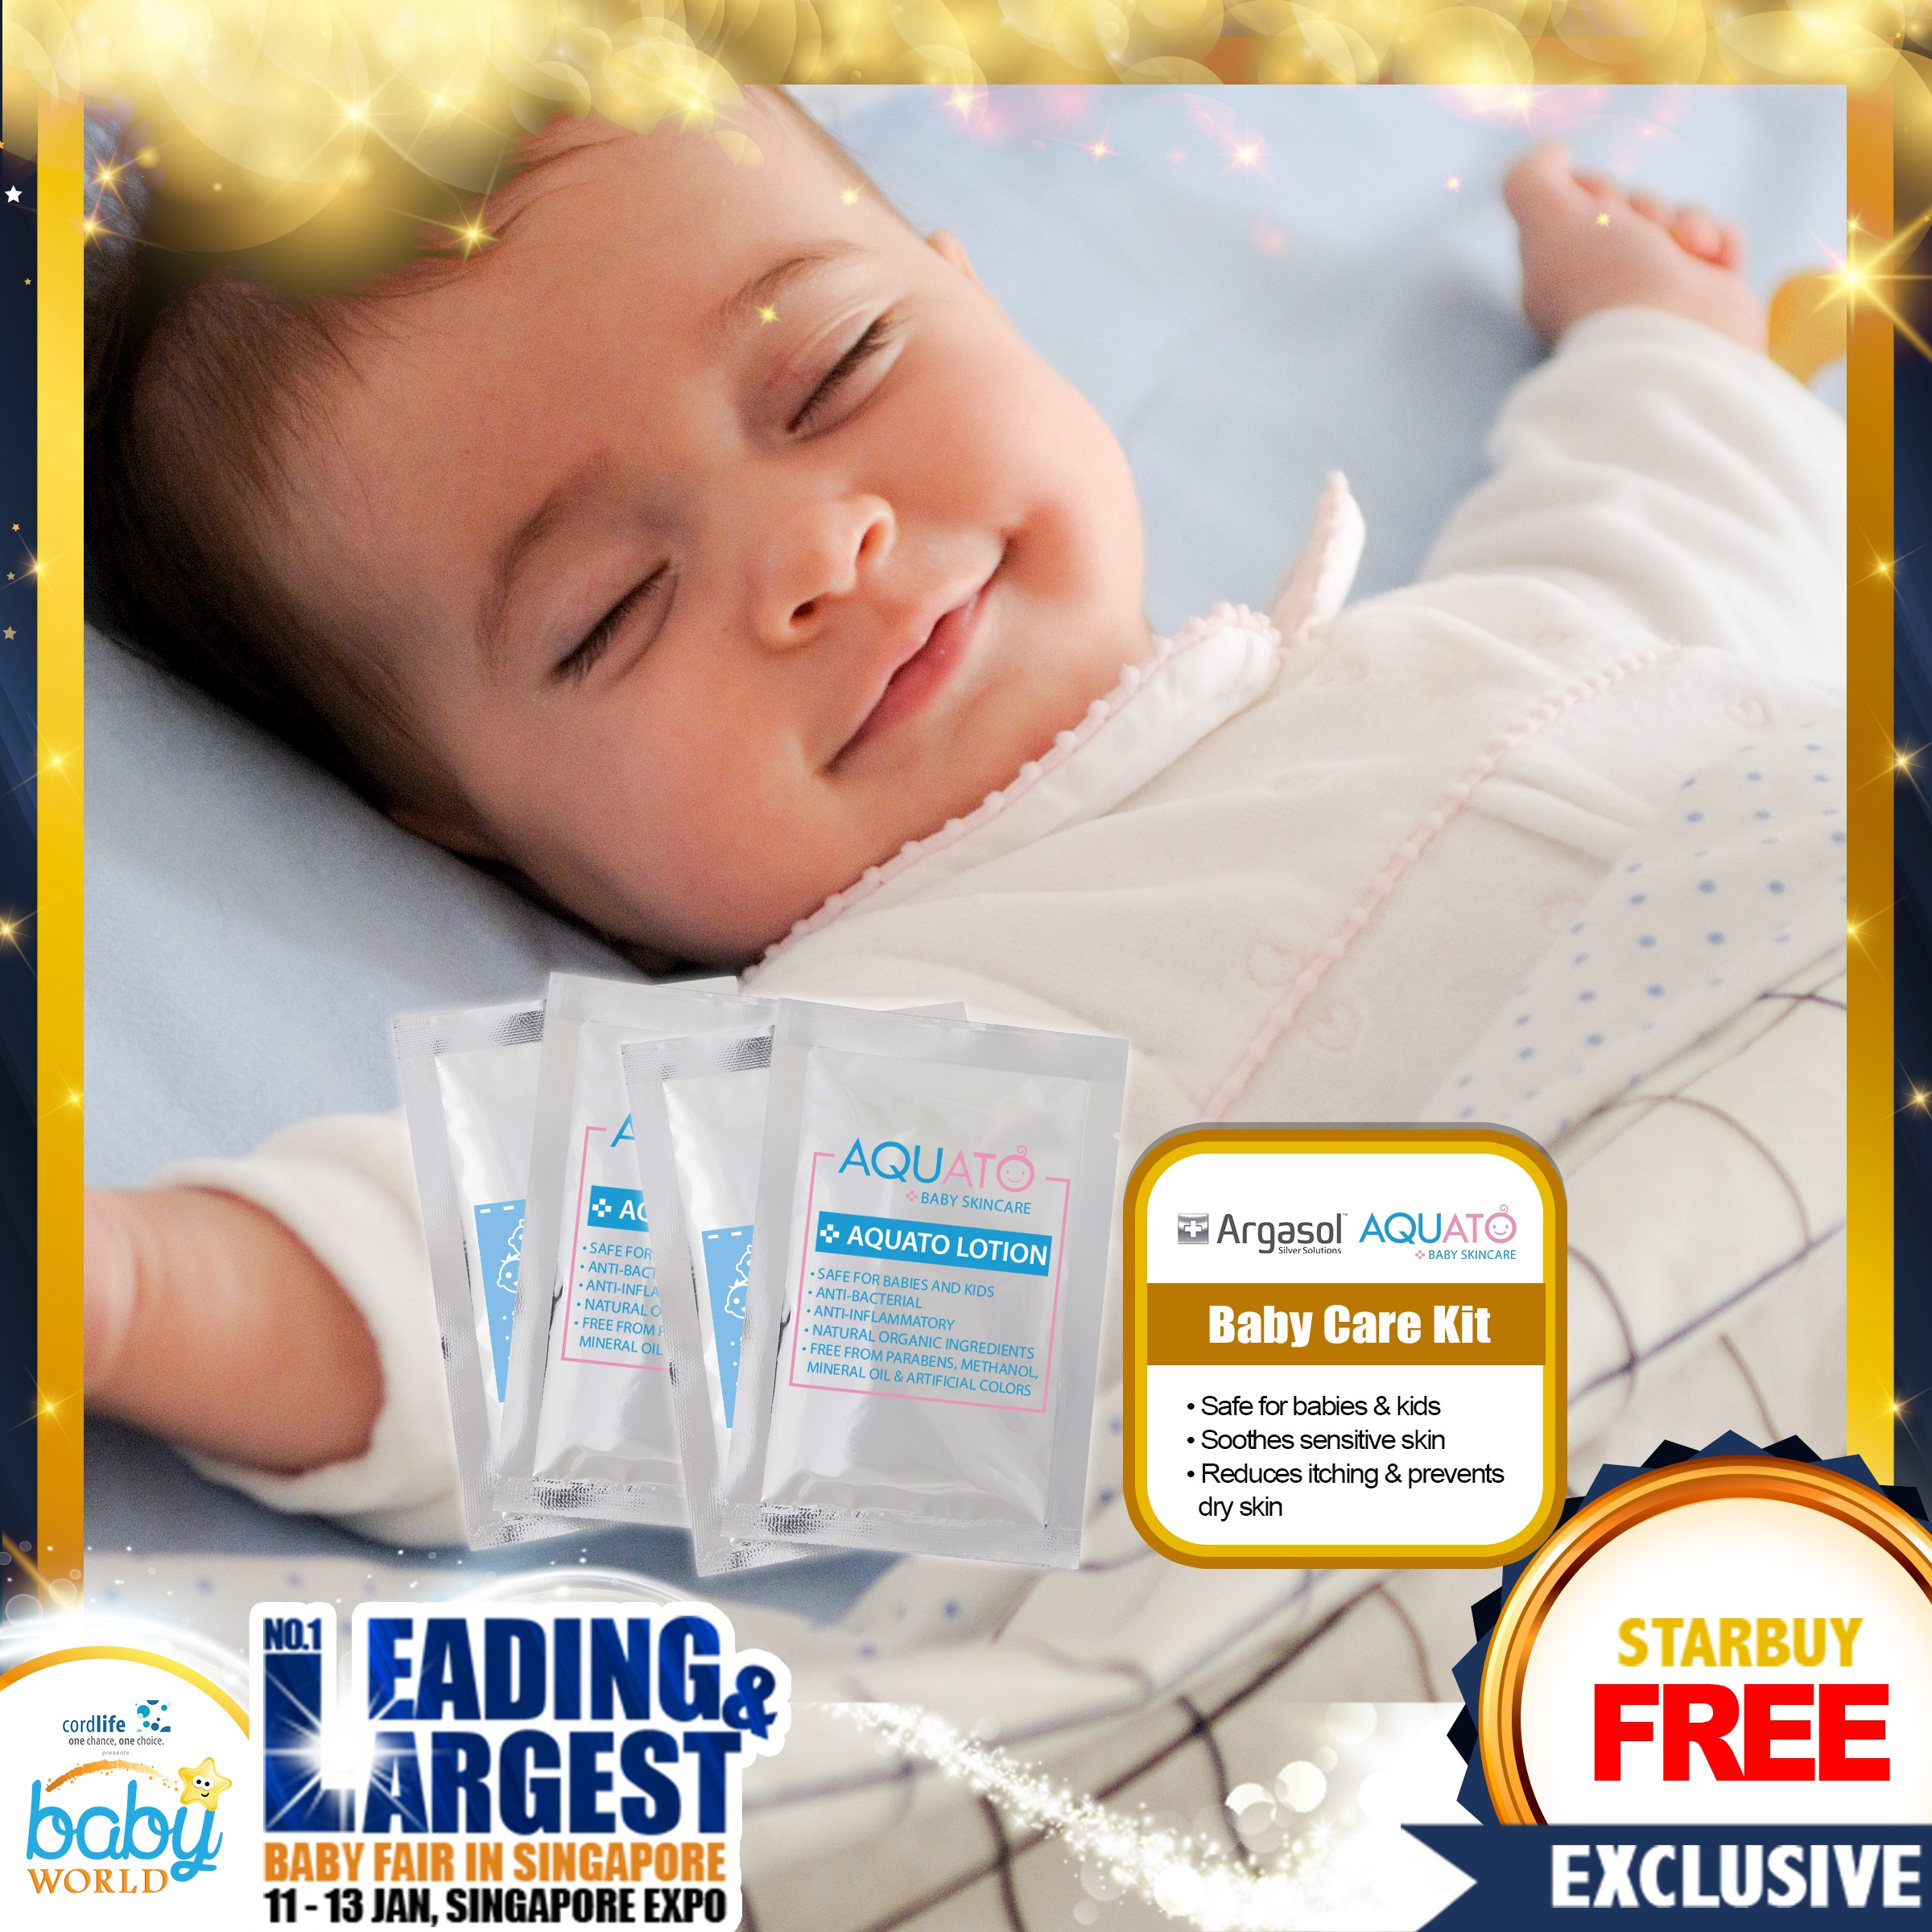 FREE Samples!! 2pcs Argasol Kids Gel + 2pcs Aquato Lotion Skincare